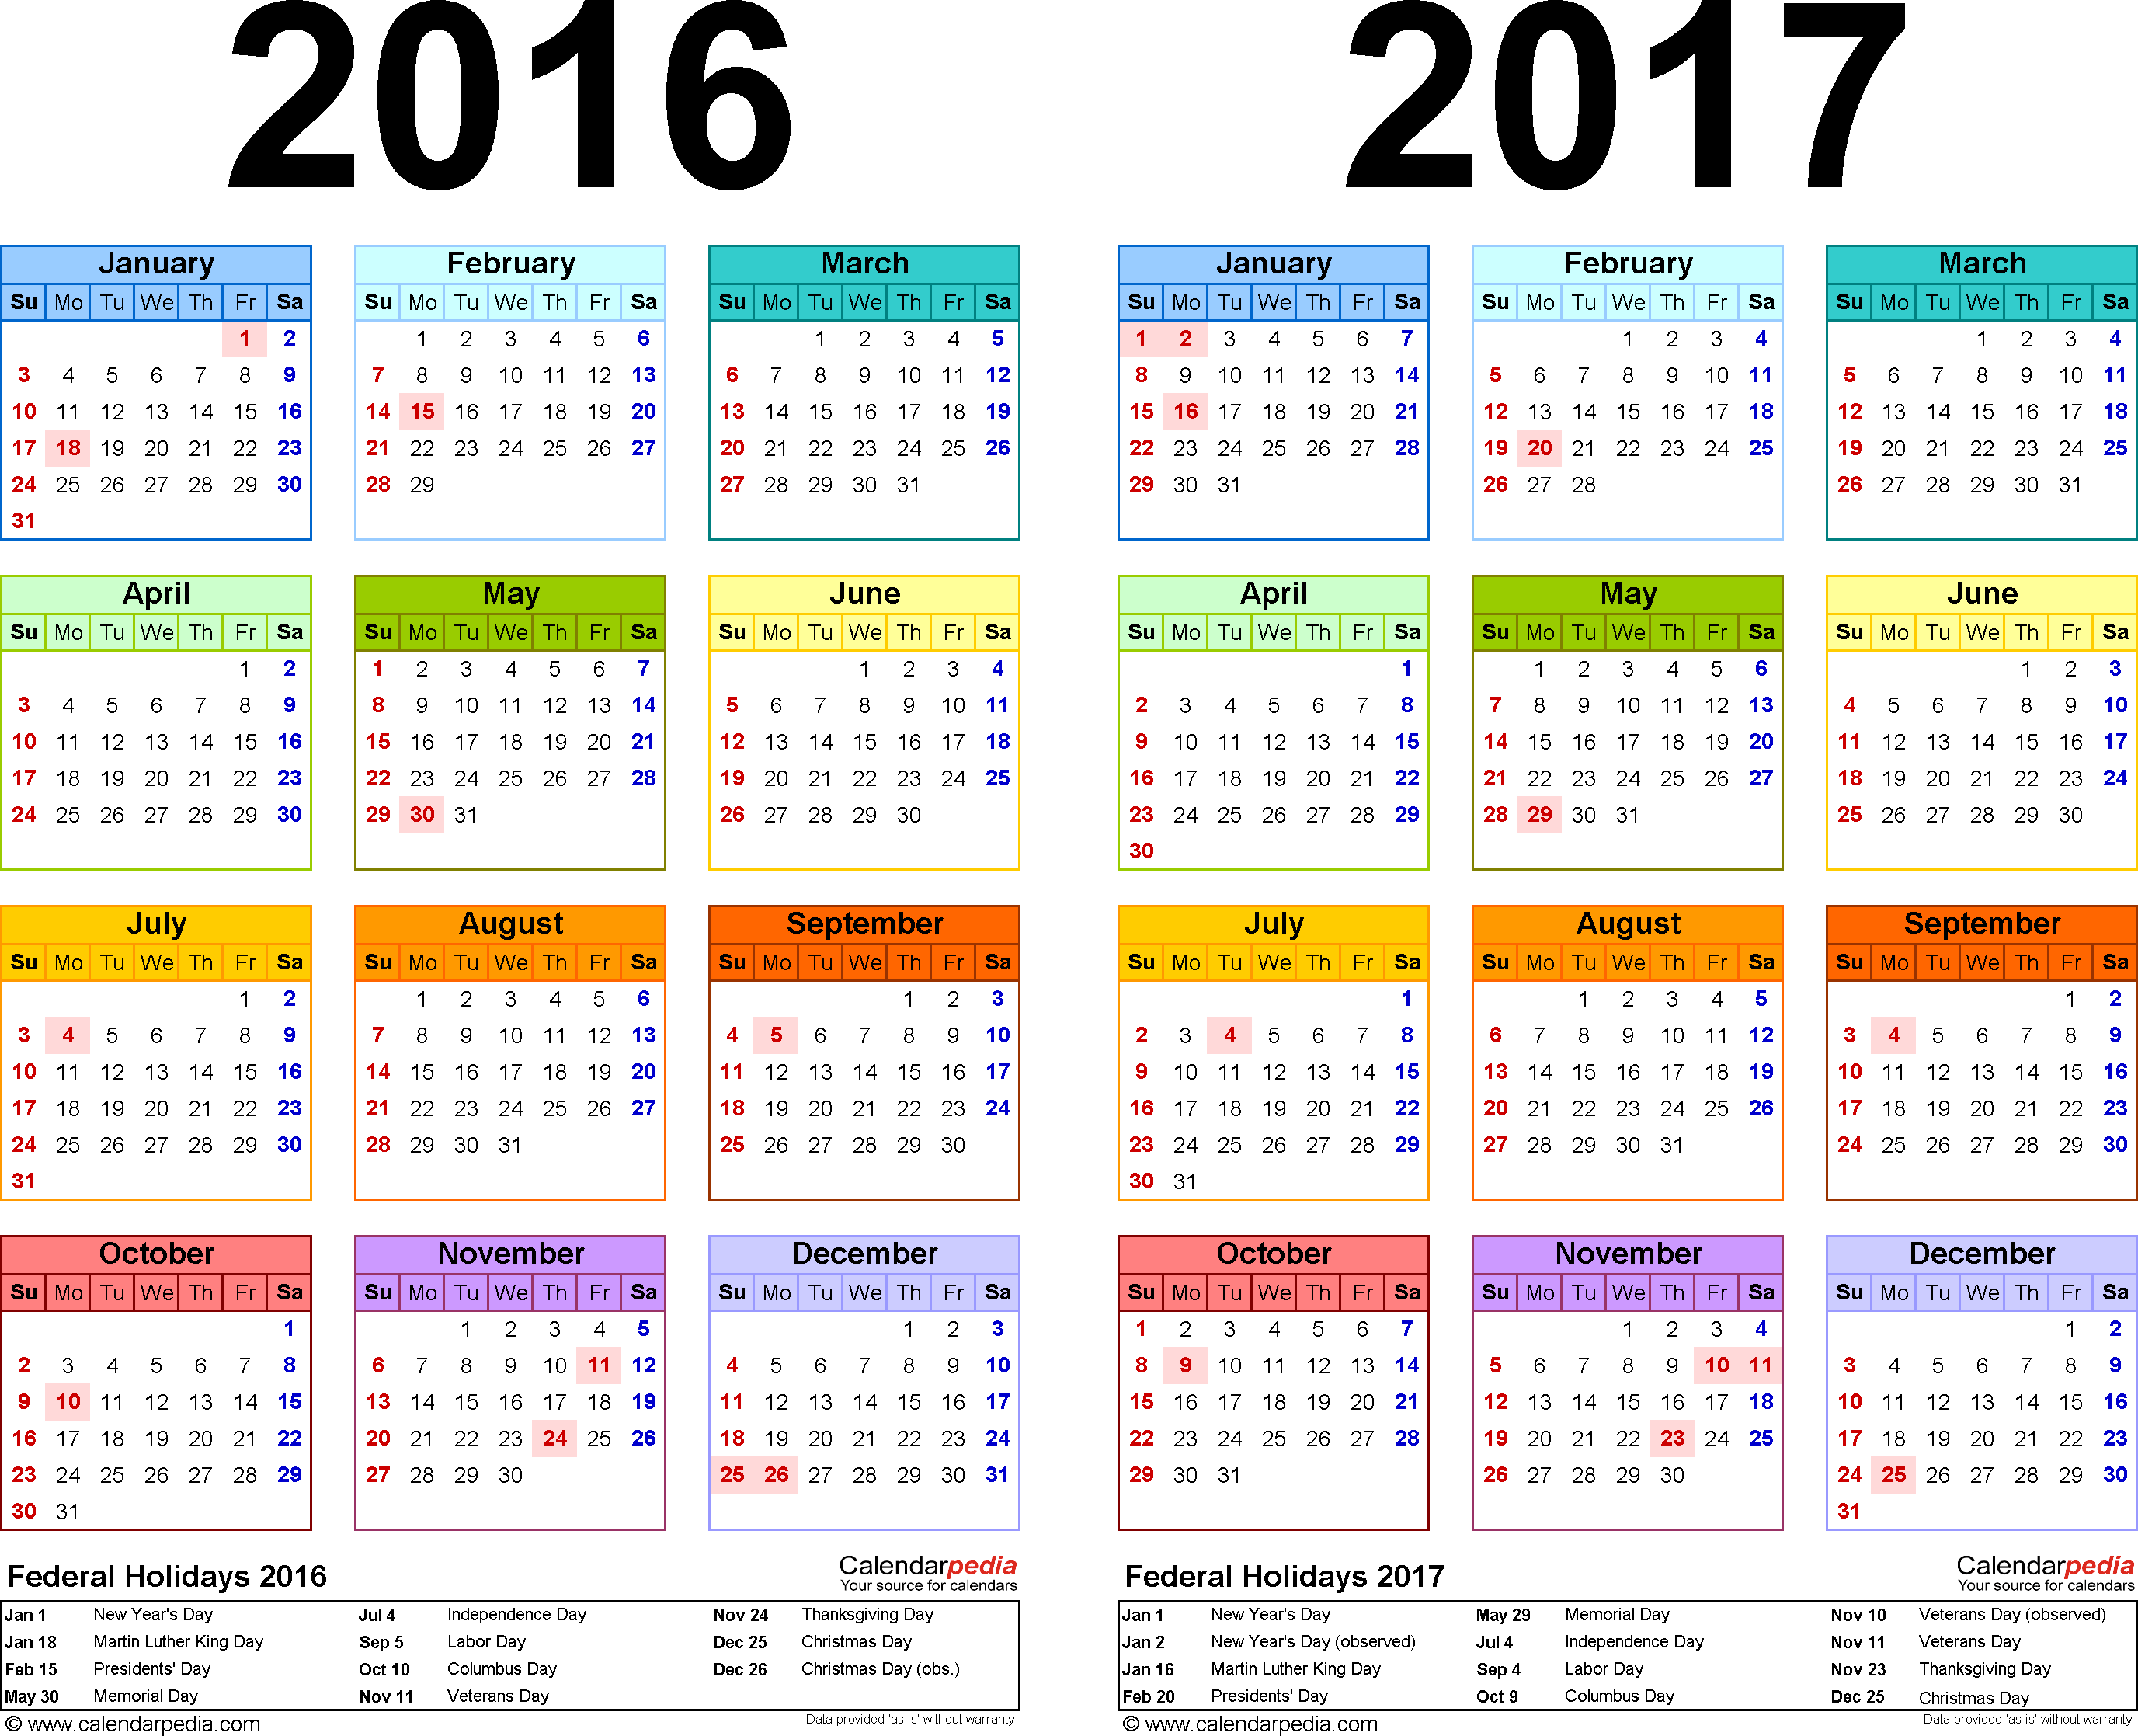 2016-2017 Calendar - free printable two-year Word calendars